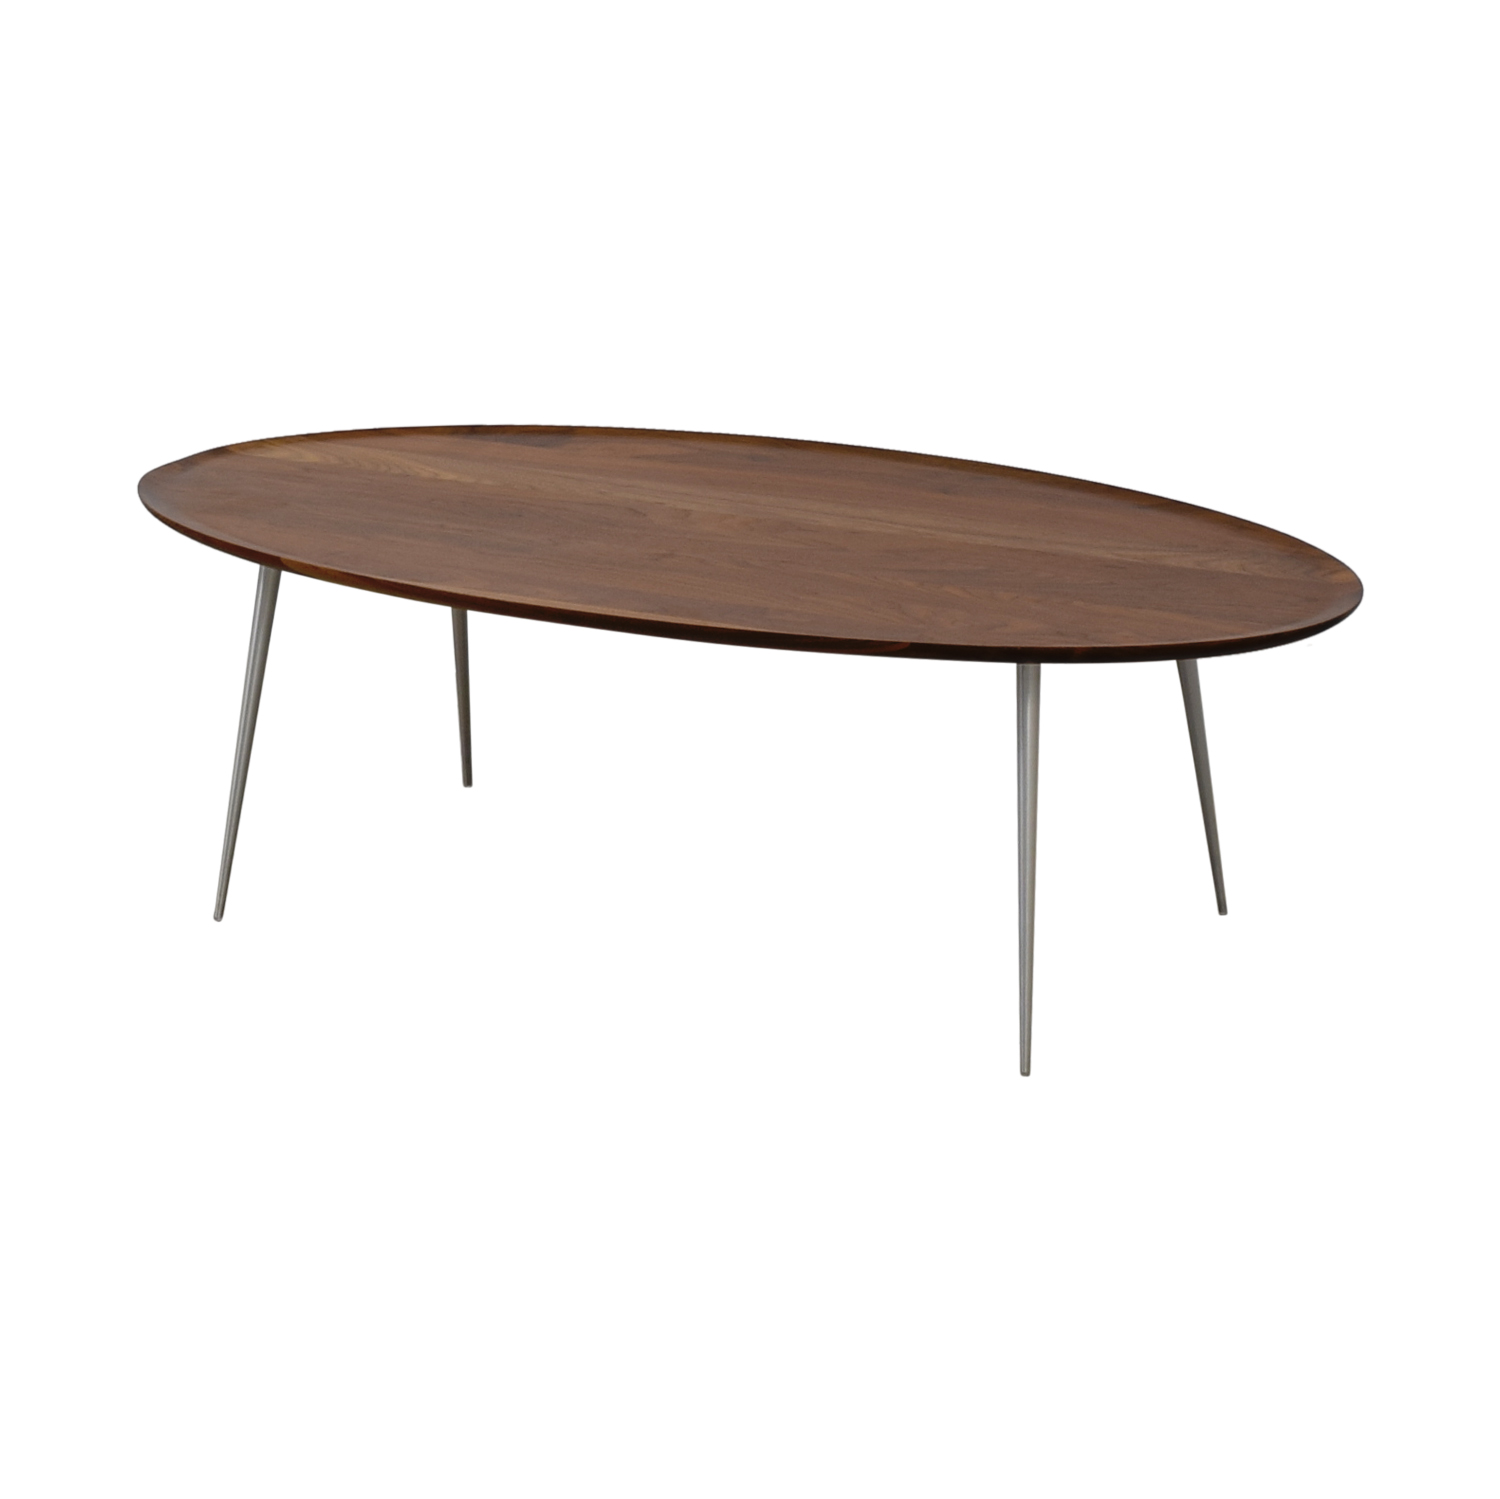 Room & Board Bailey Walnut Oval Cocktail Table / Tables